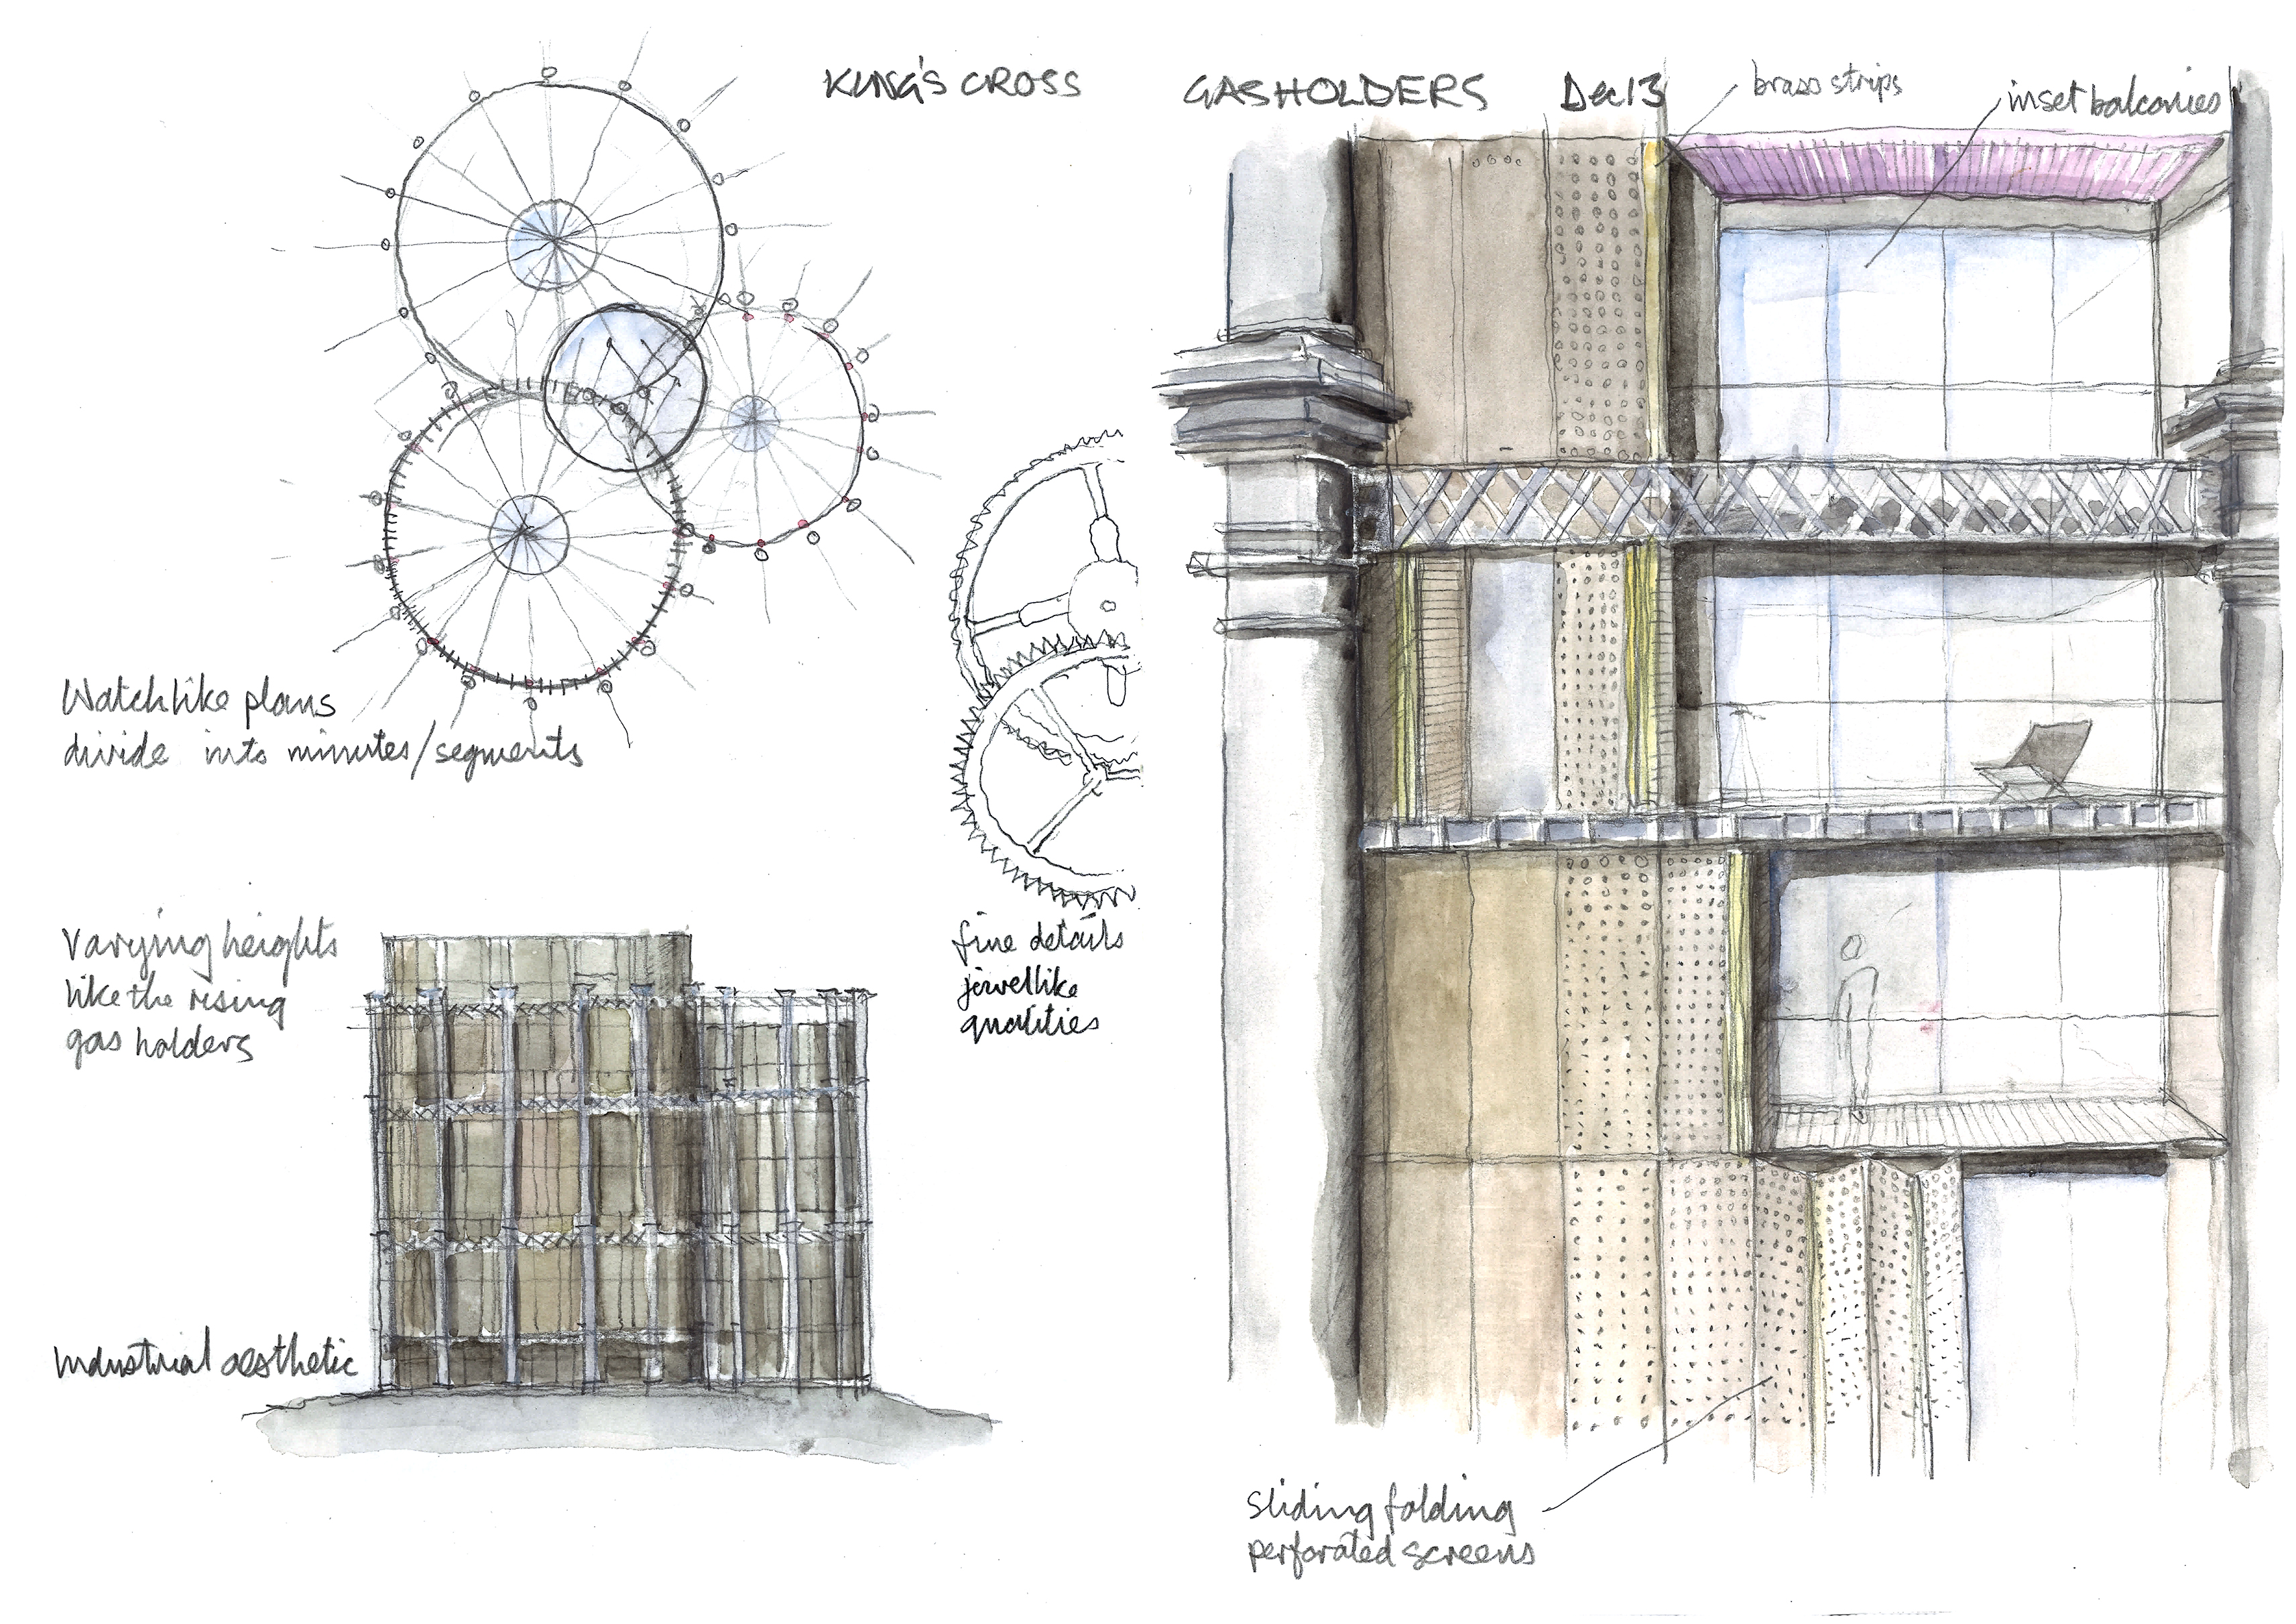 One of Chris Wilkinson's sketches of Gasholders from the Royal Academy exhibition